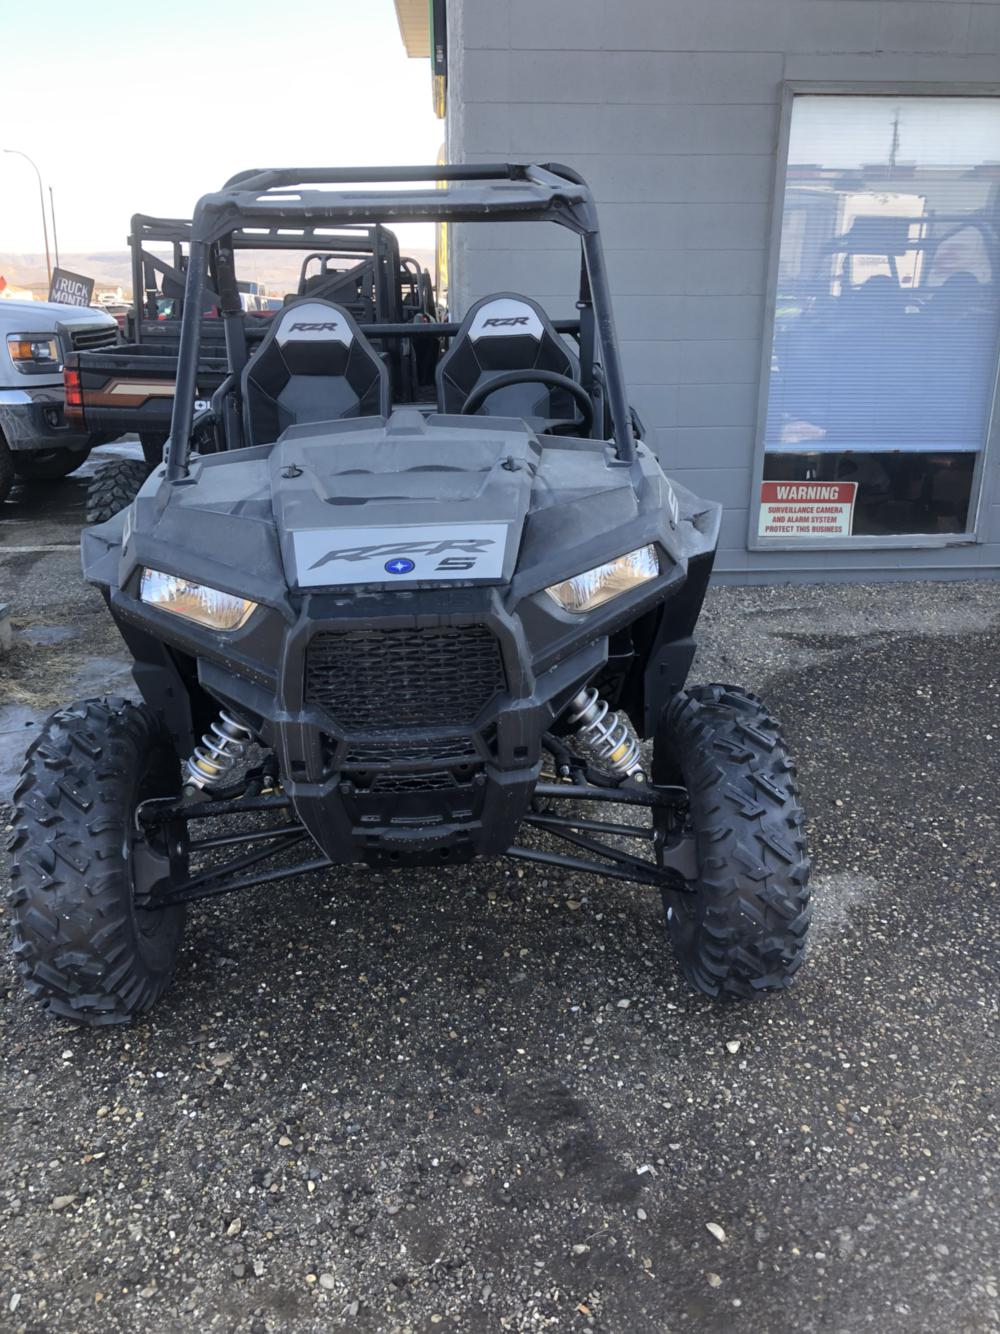 hight resolution of 2019 polaris industries rzr s 900 eps black pearl